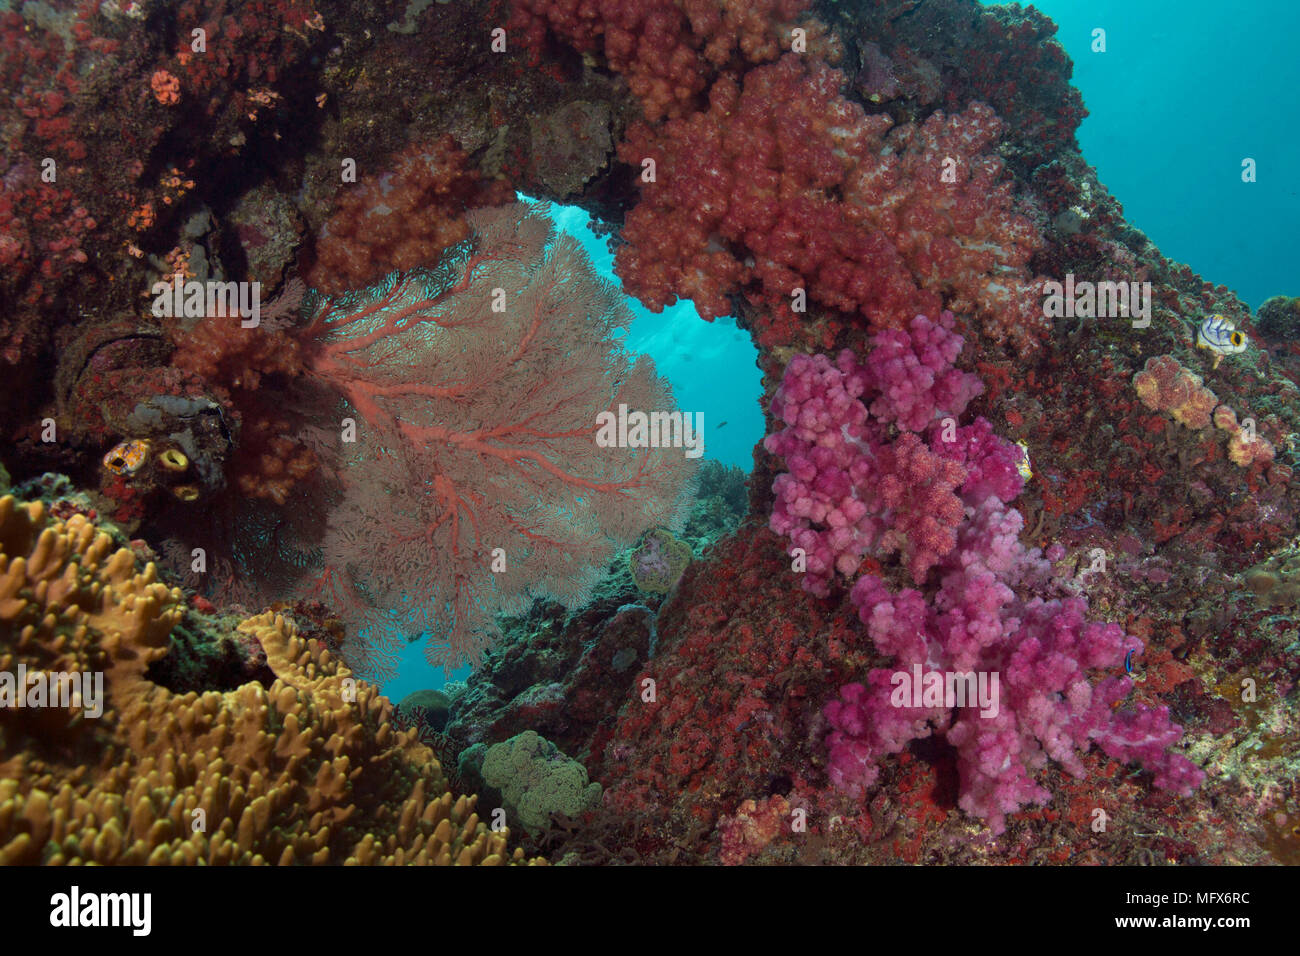 Unimaginable size of  coral gardens, diversity of forms and fabulous colors. Picture was taken in the Ceram sea, Raja Ampat, West Papua, Indonesia Stock Photo